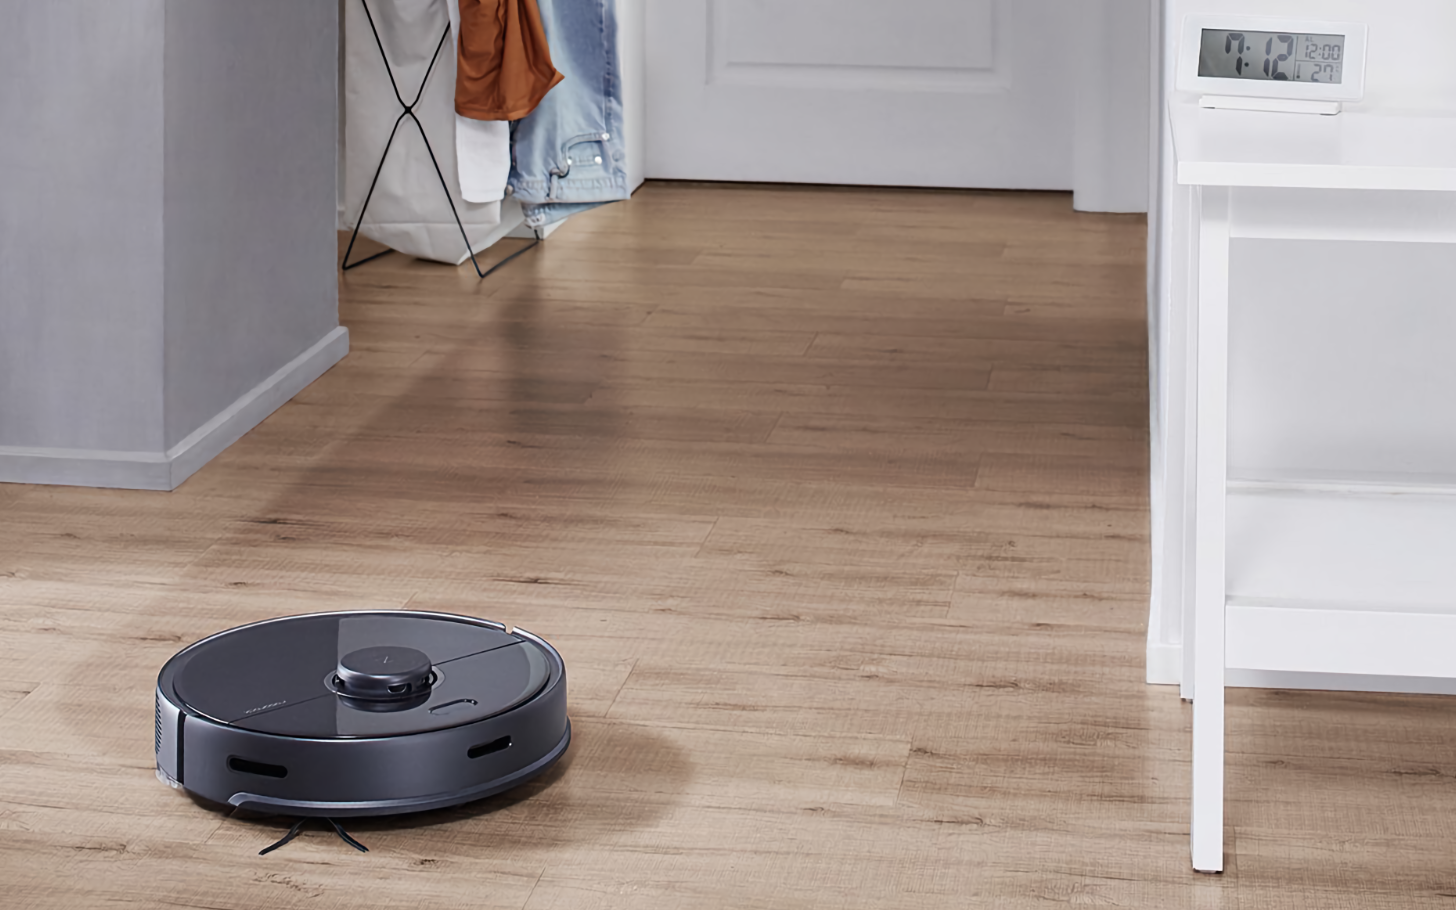 Roborock smart vacuums are up to $120 off on Amazon, today only - Android Police